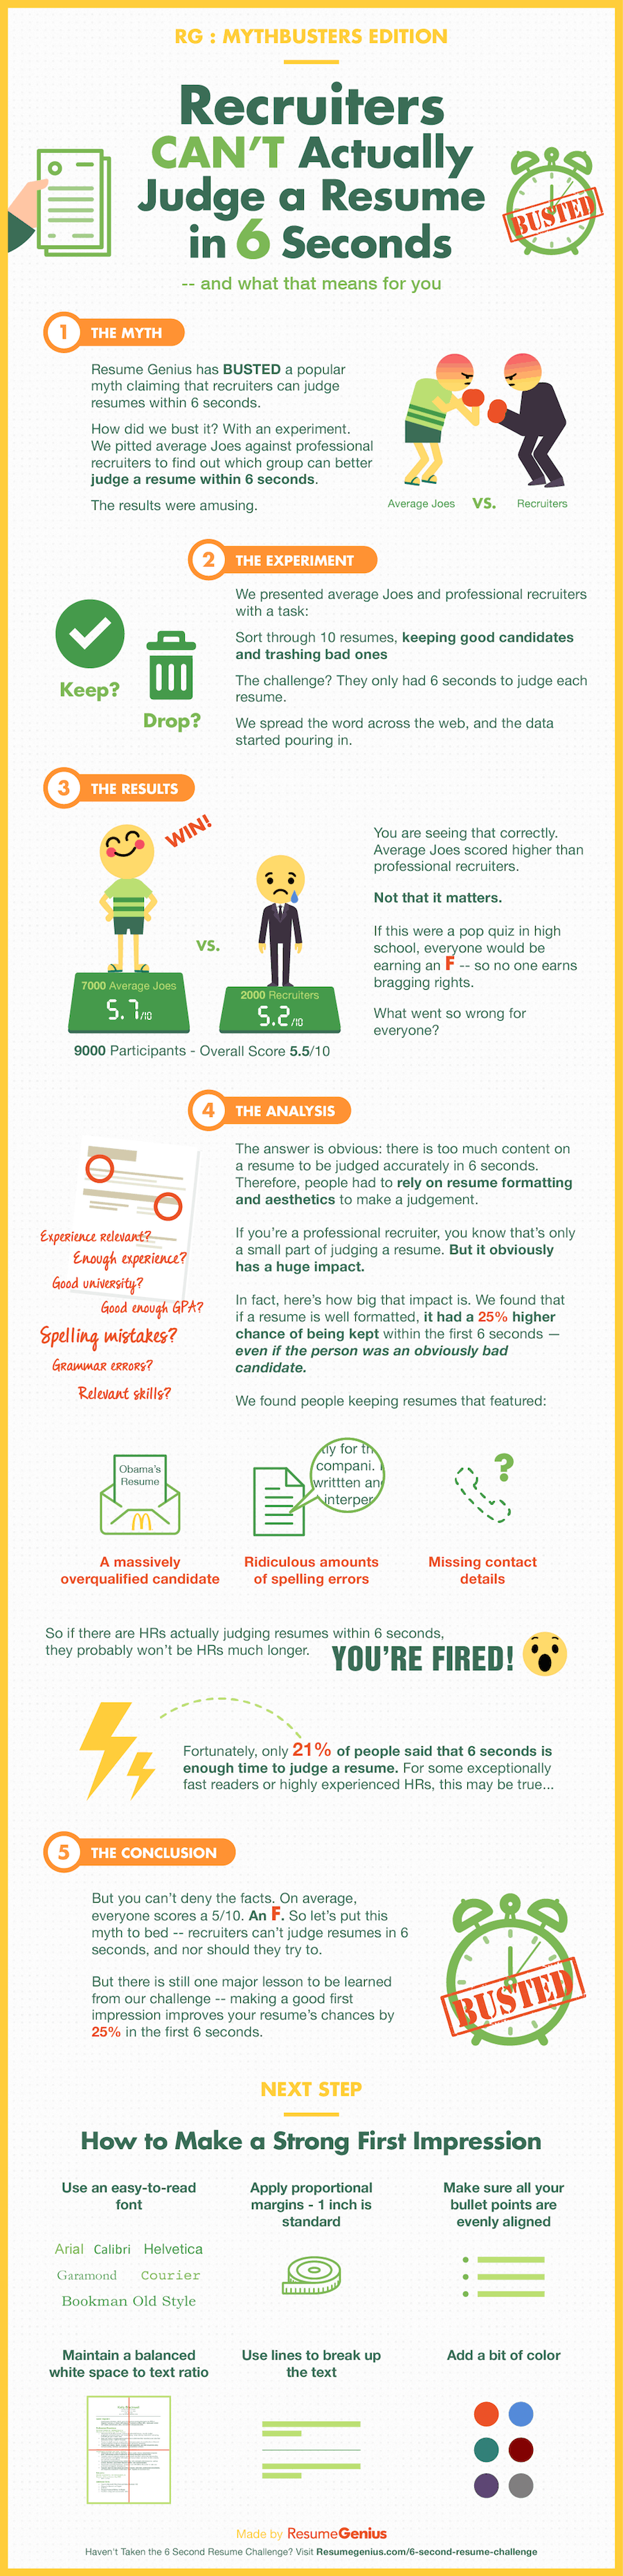 6-Second-Resume-Results-Infographic (1)